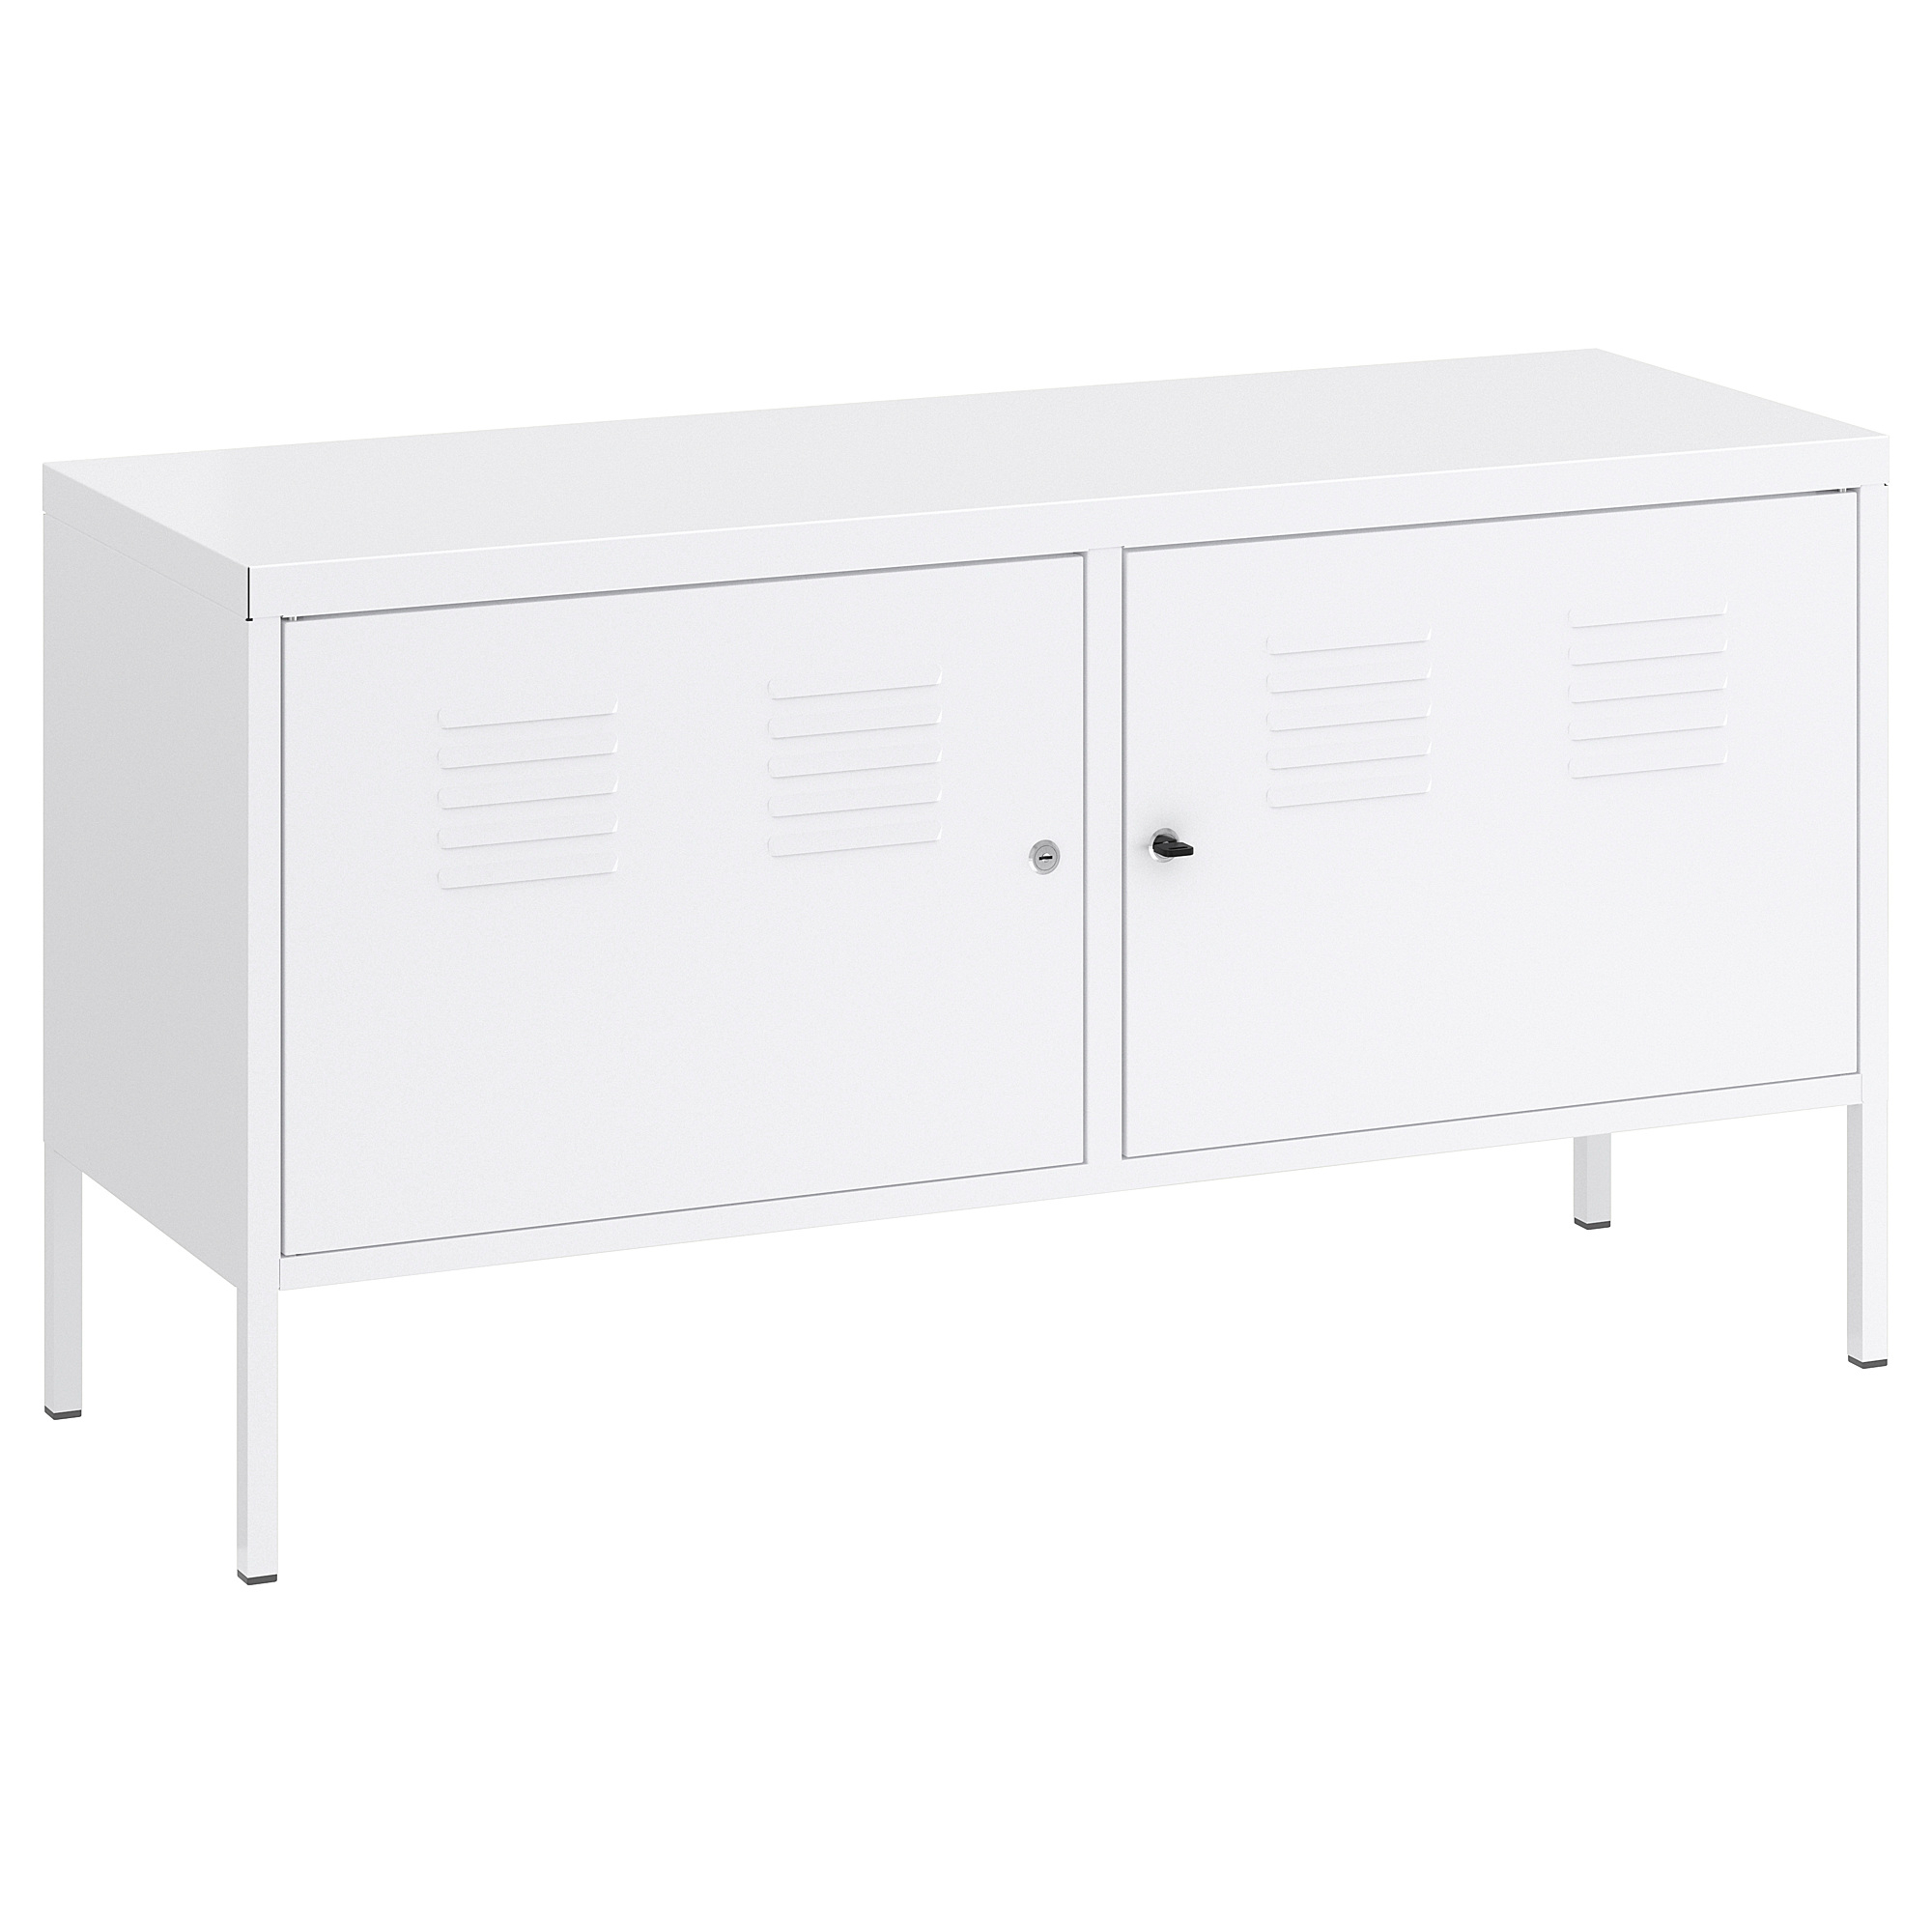 Featured Photo of Koip 6 Door Sideboards